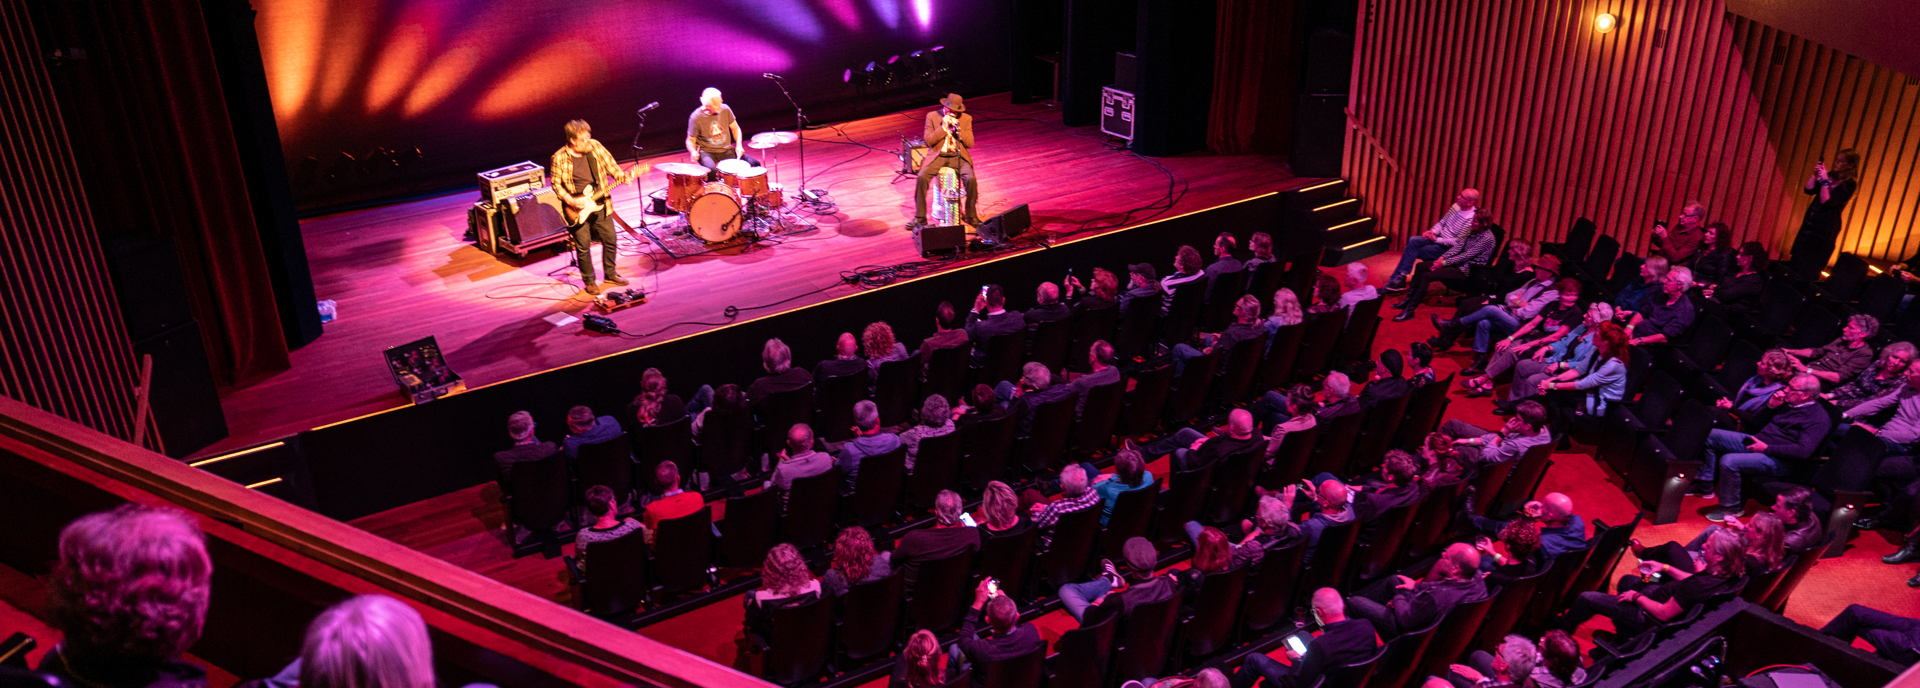 Bluesfestival 2019 in de Passagezaal